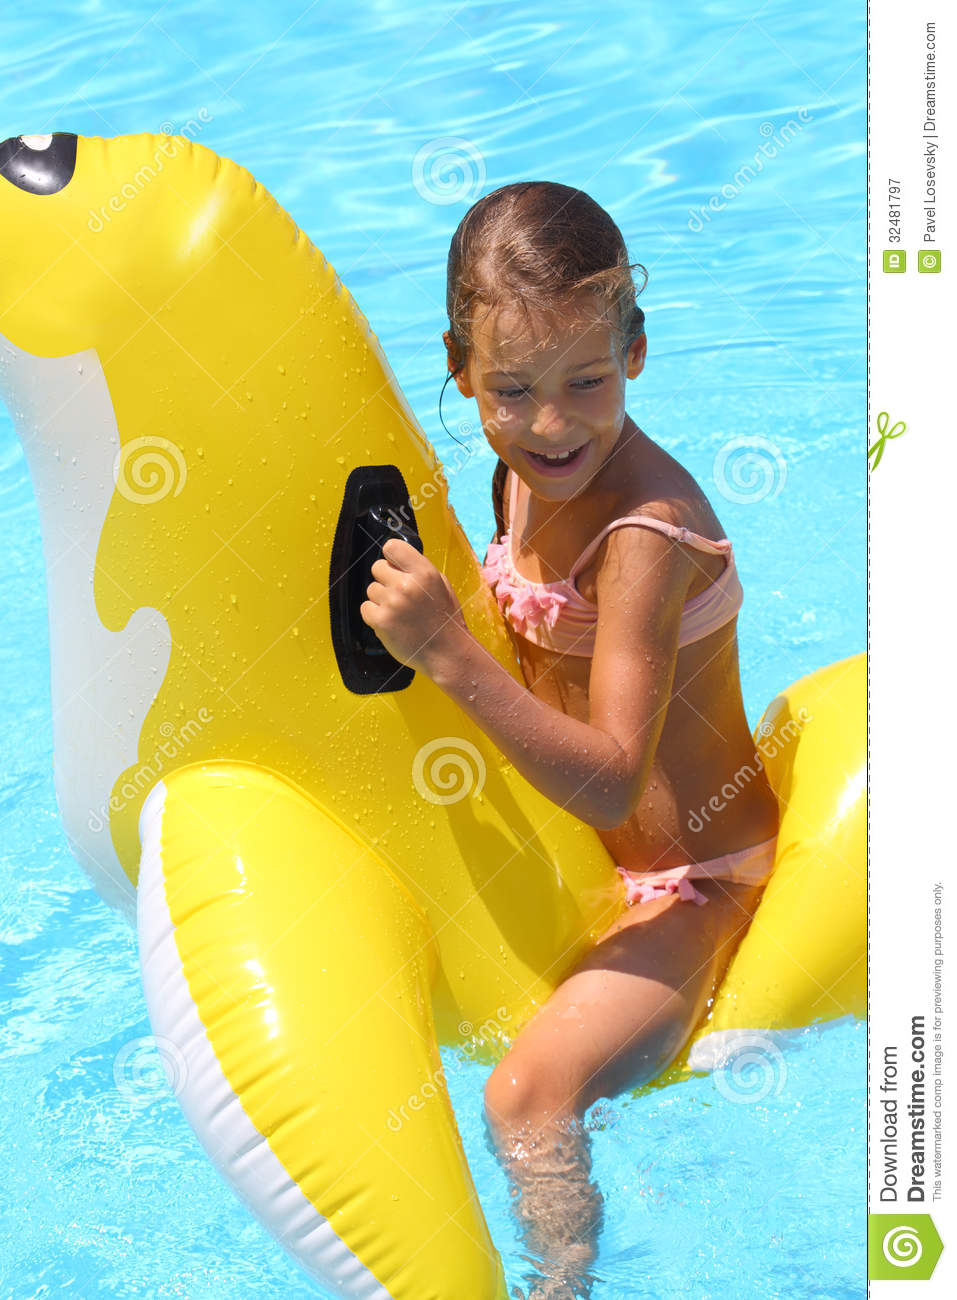 Attirant Happy Girl Swimming At The Childrens Inflatable Toy